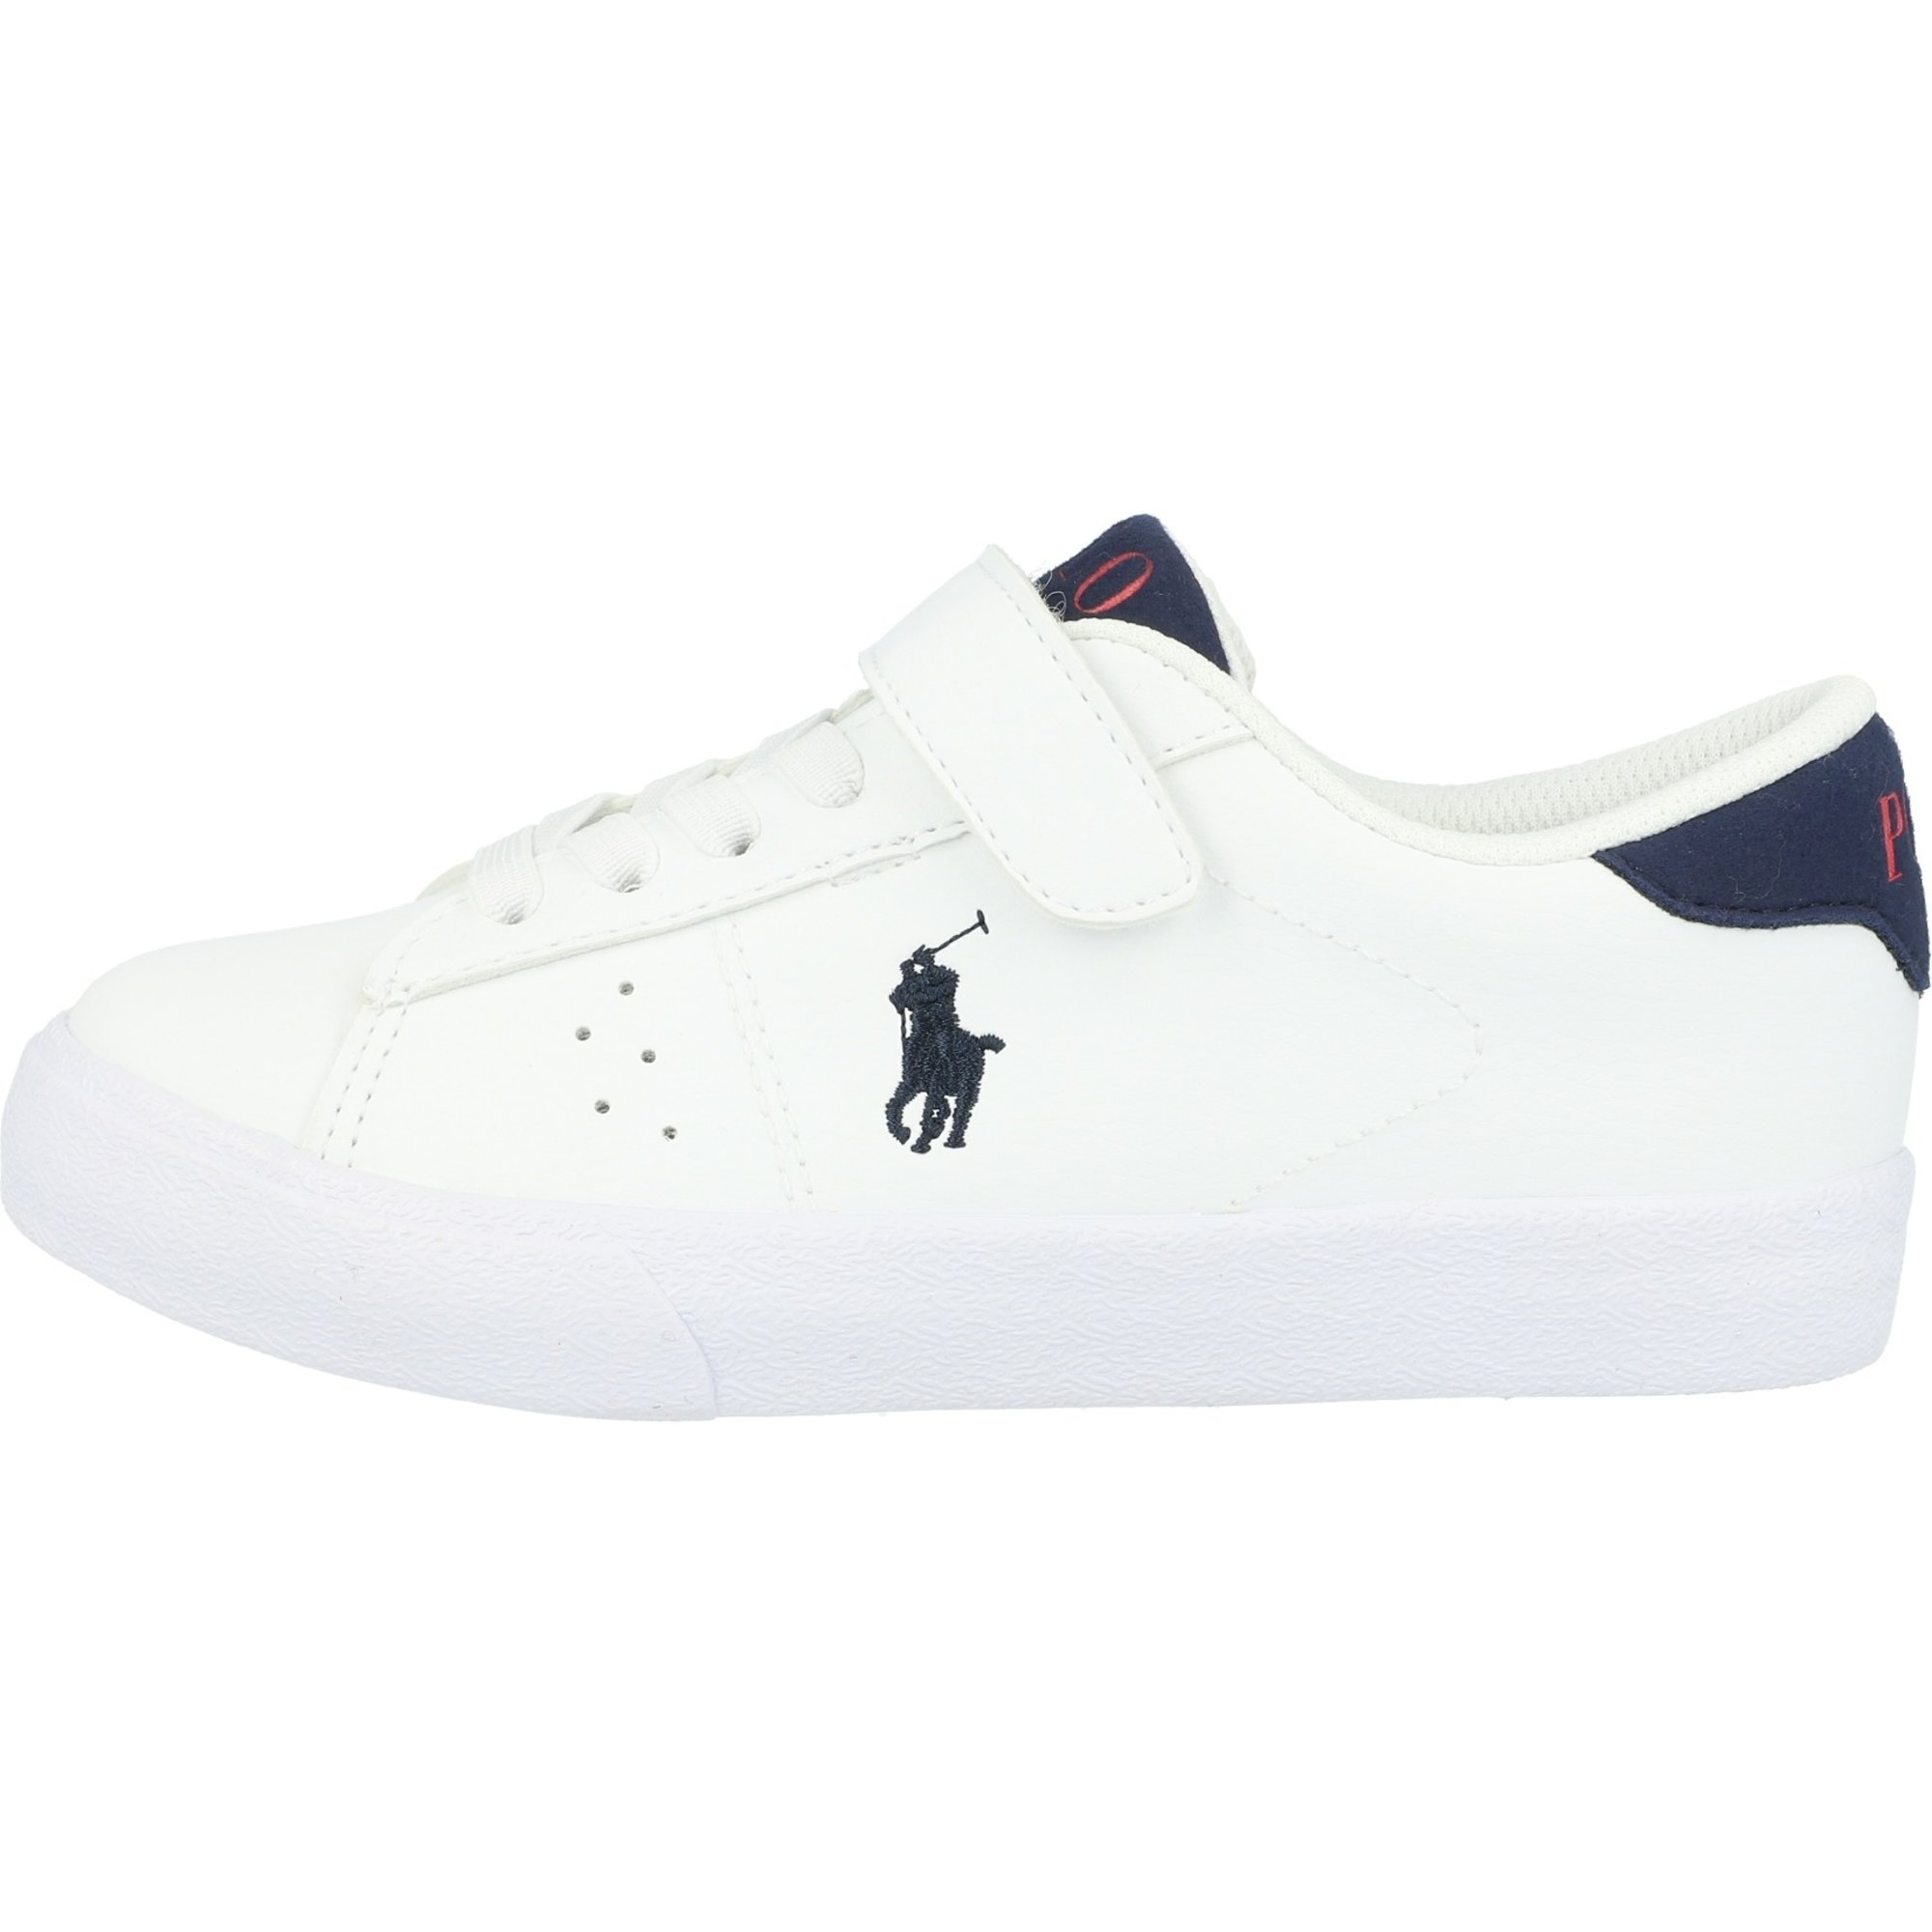 Polo Ralph Lauren Theron PS C White/Navy Tumbled